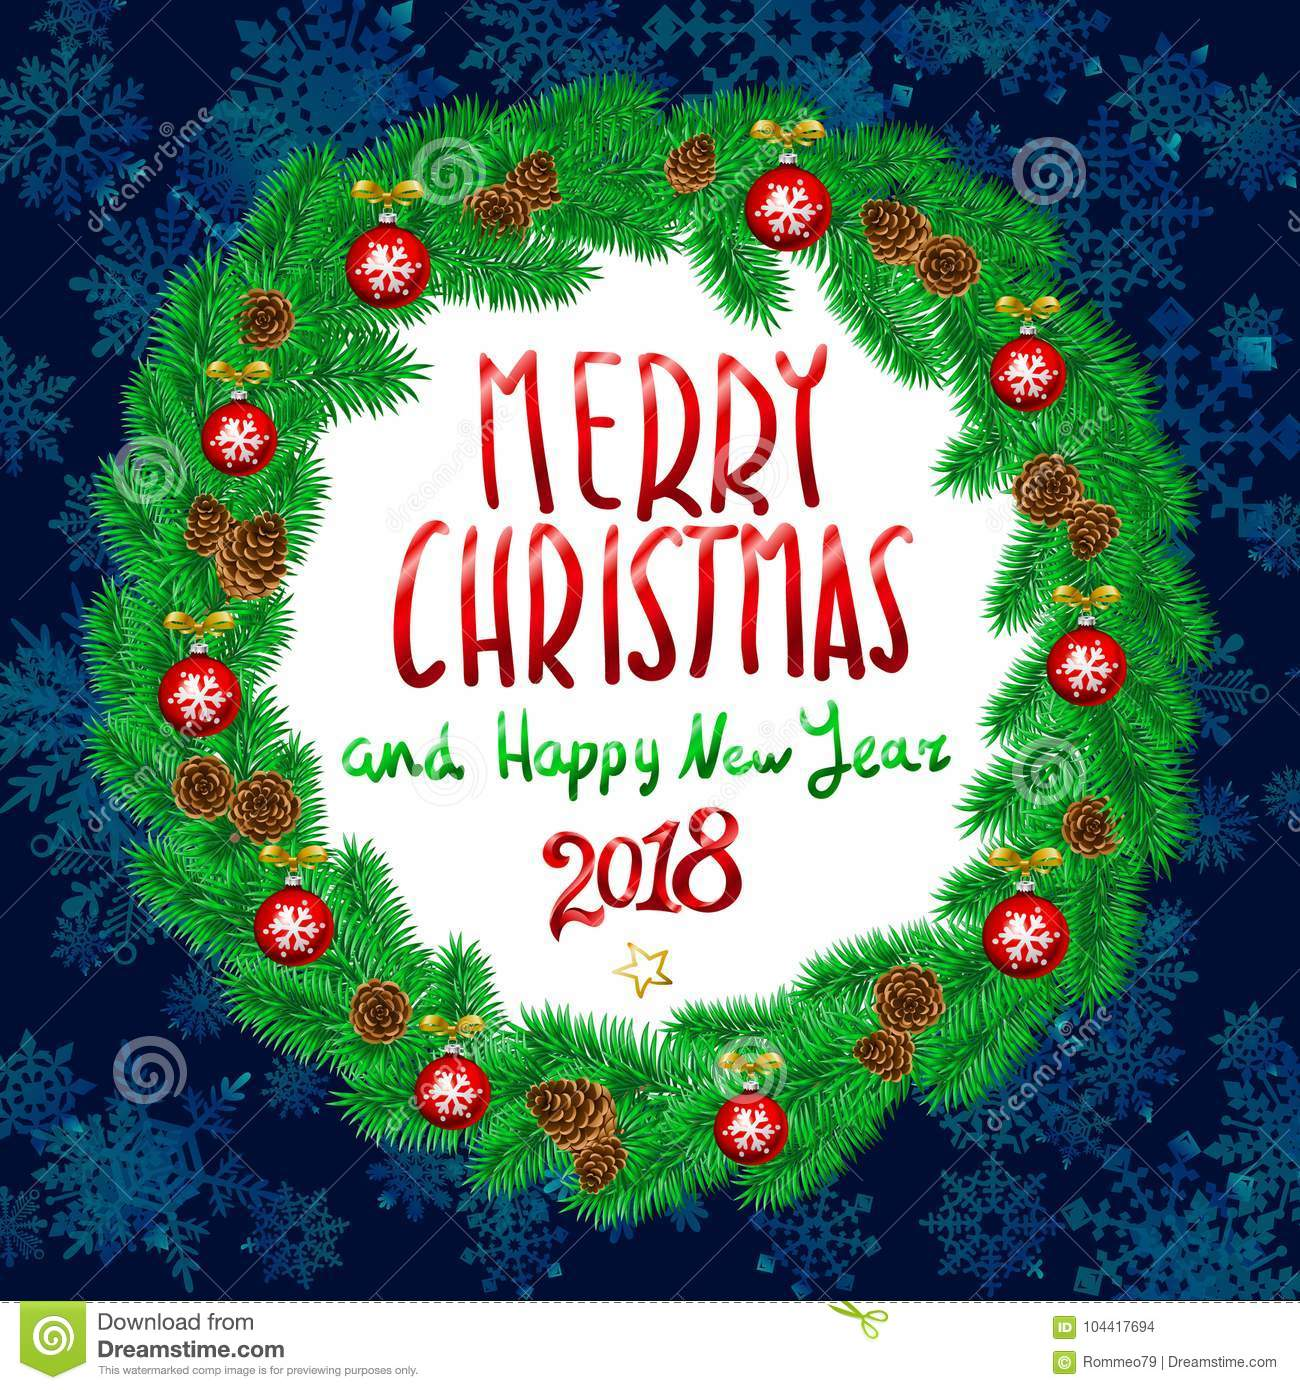 The Best Merry Christmas And A Happy New Year 2018